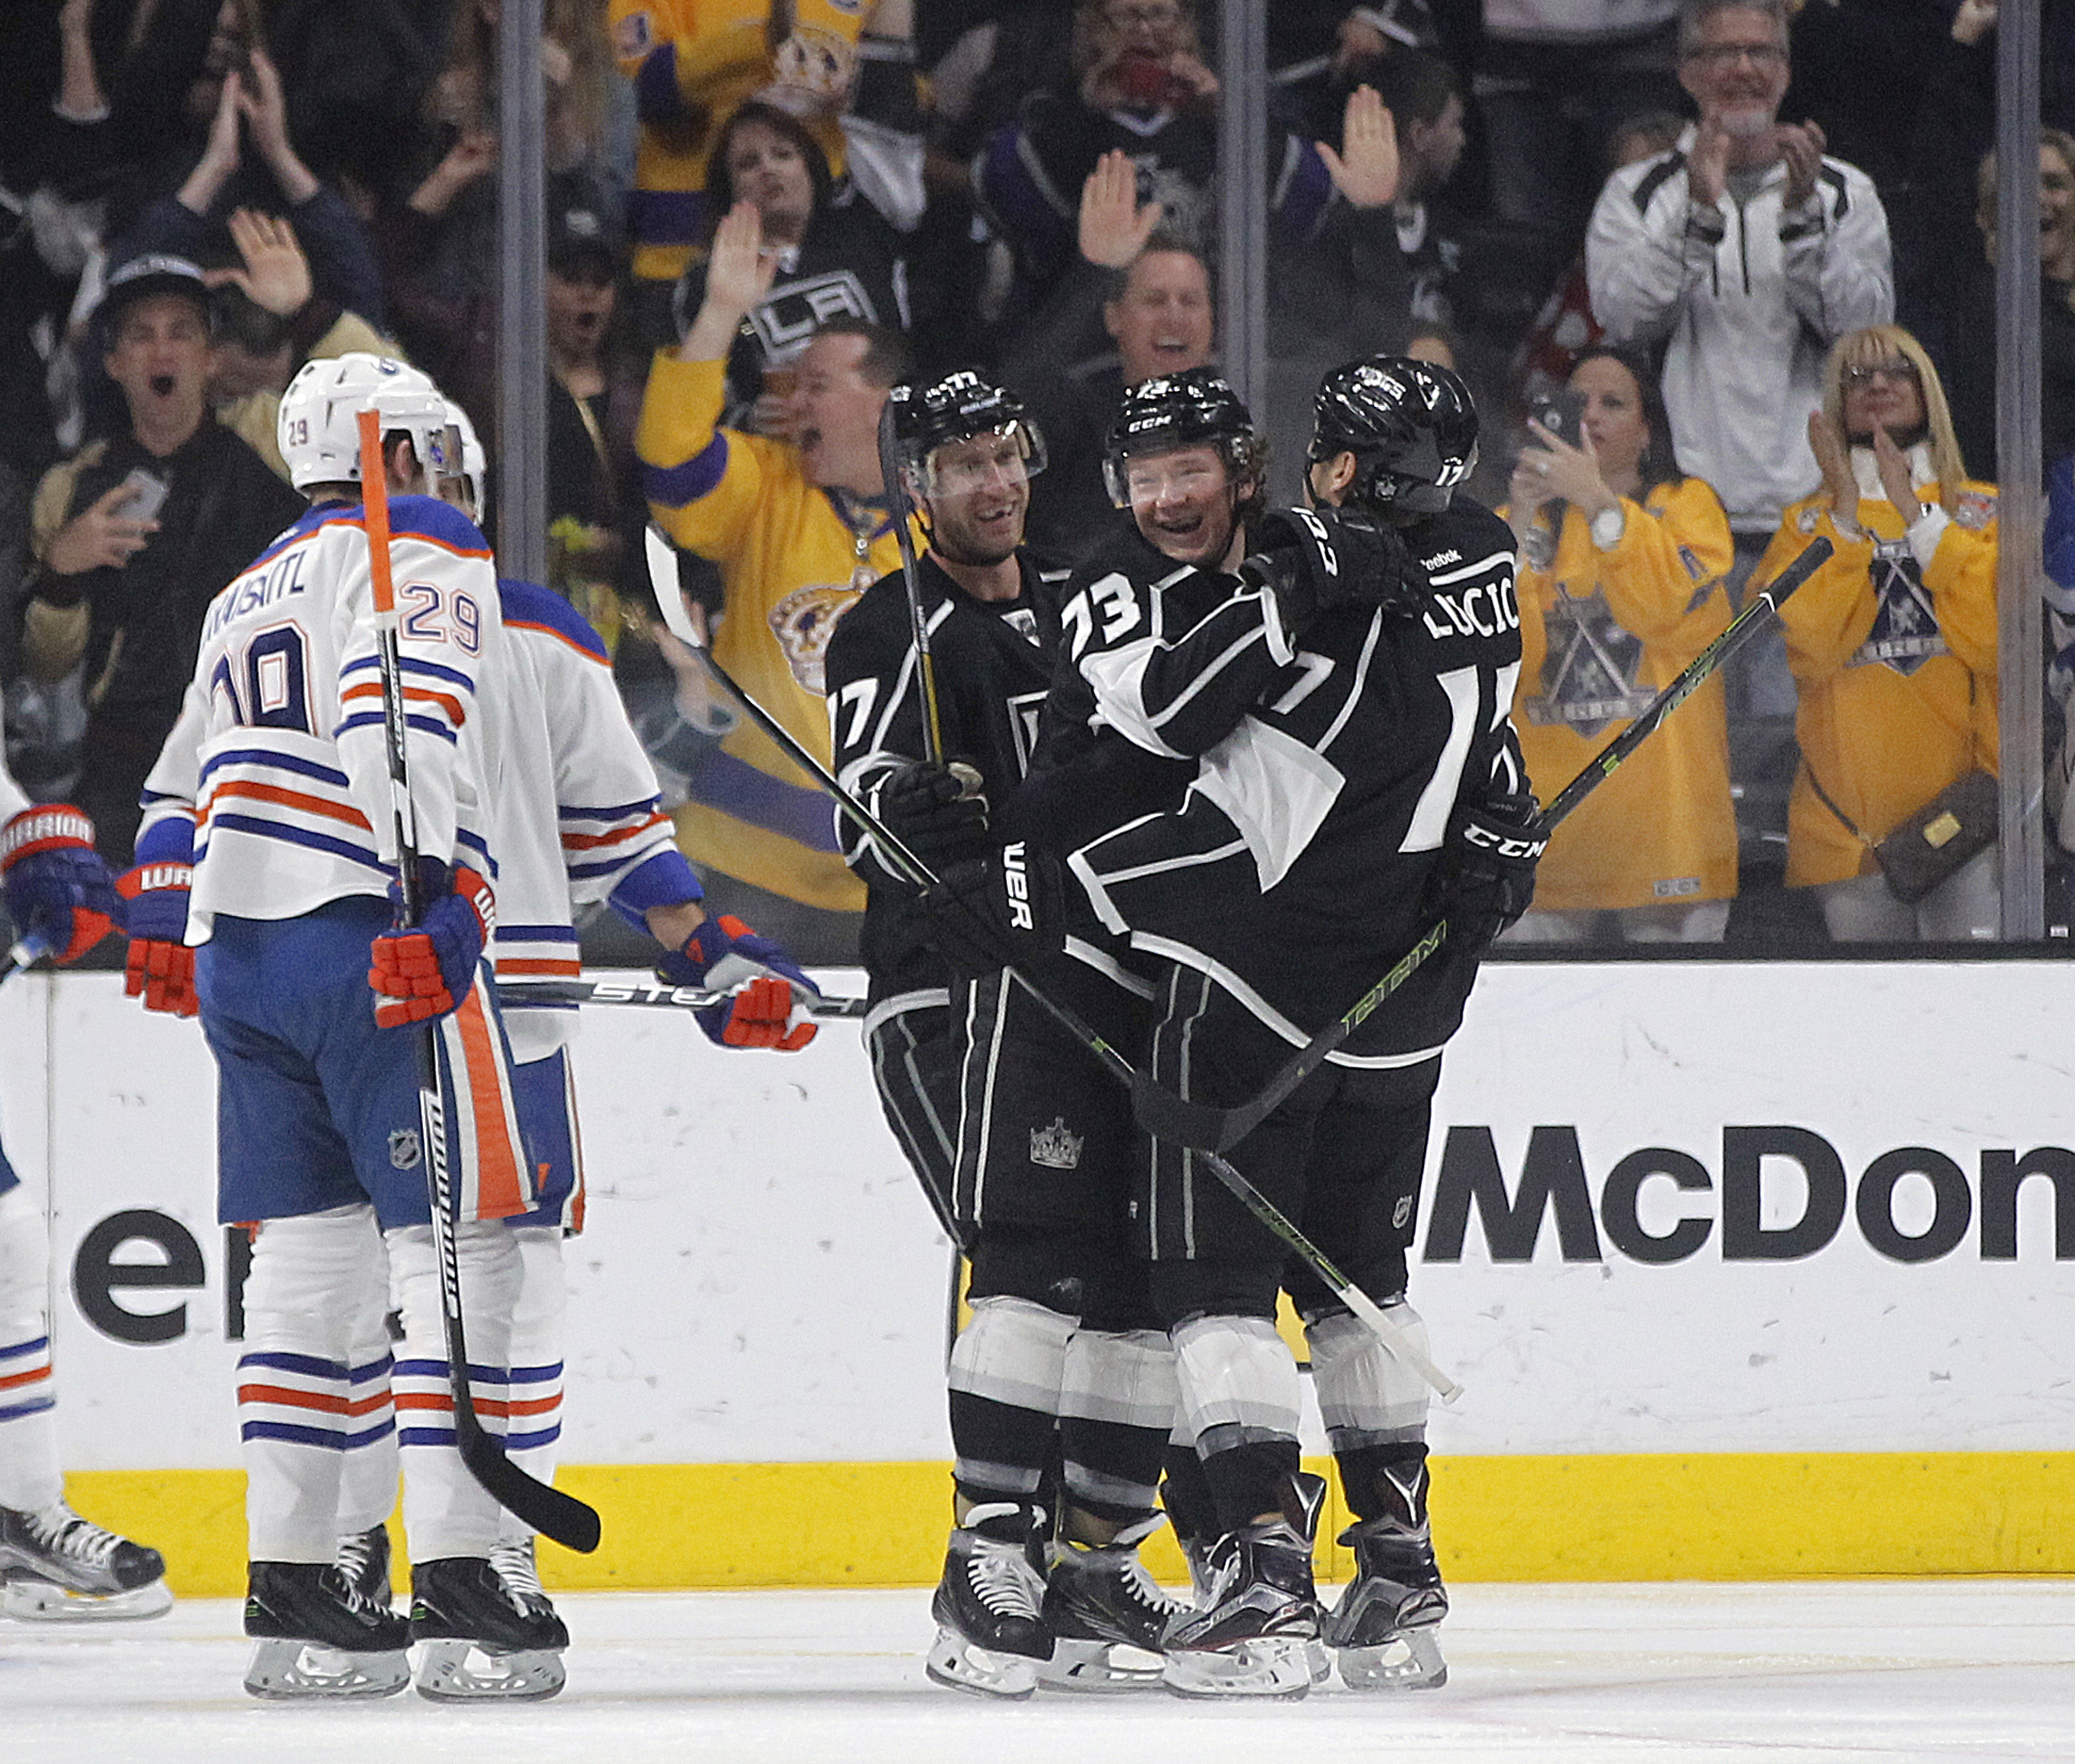 Los Angeles Kings center Tyler Toffoli (73) celebrates his goal with left wing Milan Lucic, right, and center Jeff Carter, as Edmonton Oilers center Leon Draisaitl (29), of Germany, skates by during the first period of an NHL hockey game in Los Angeles, S